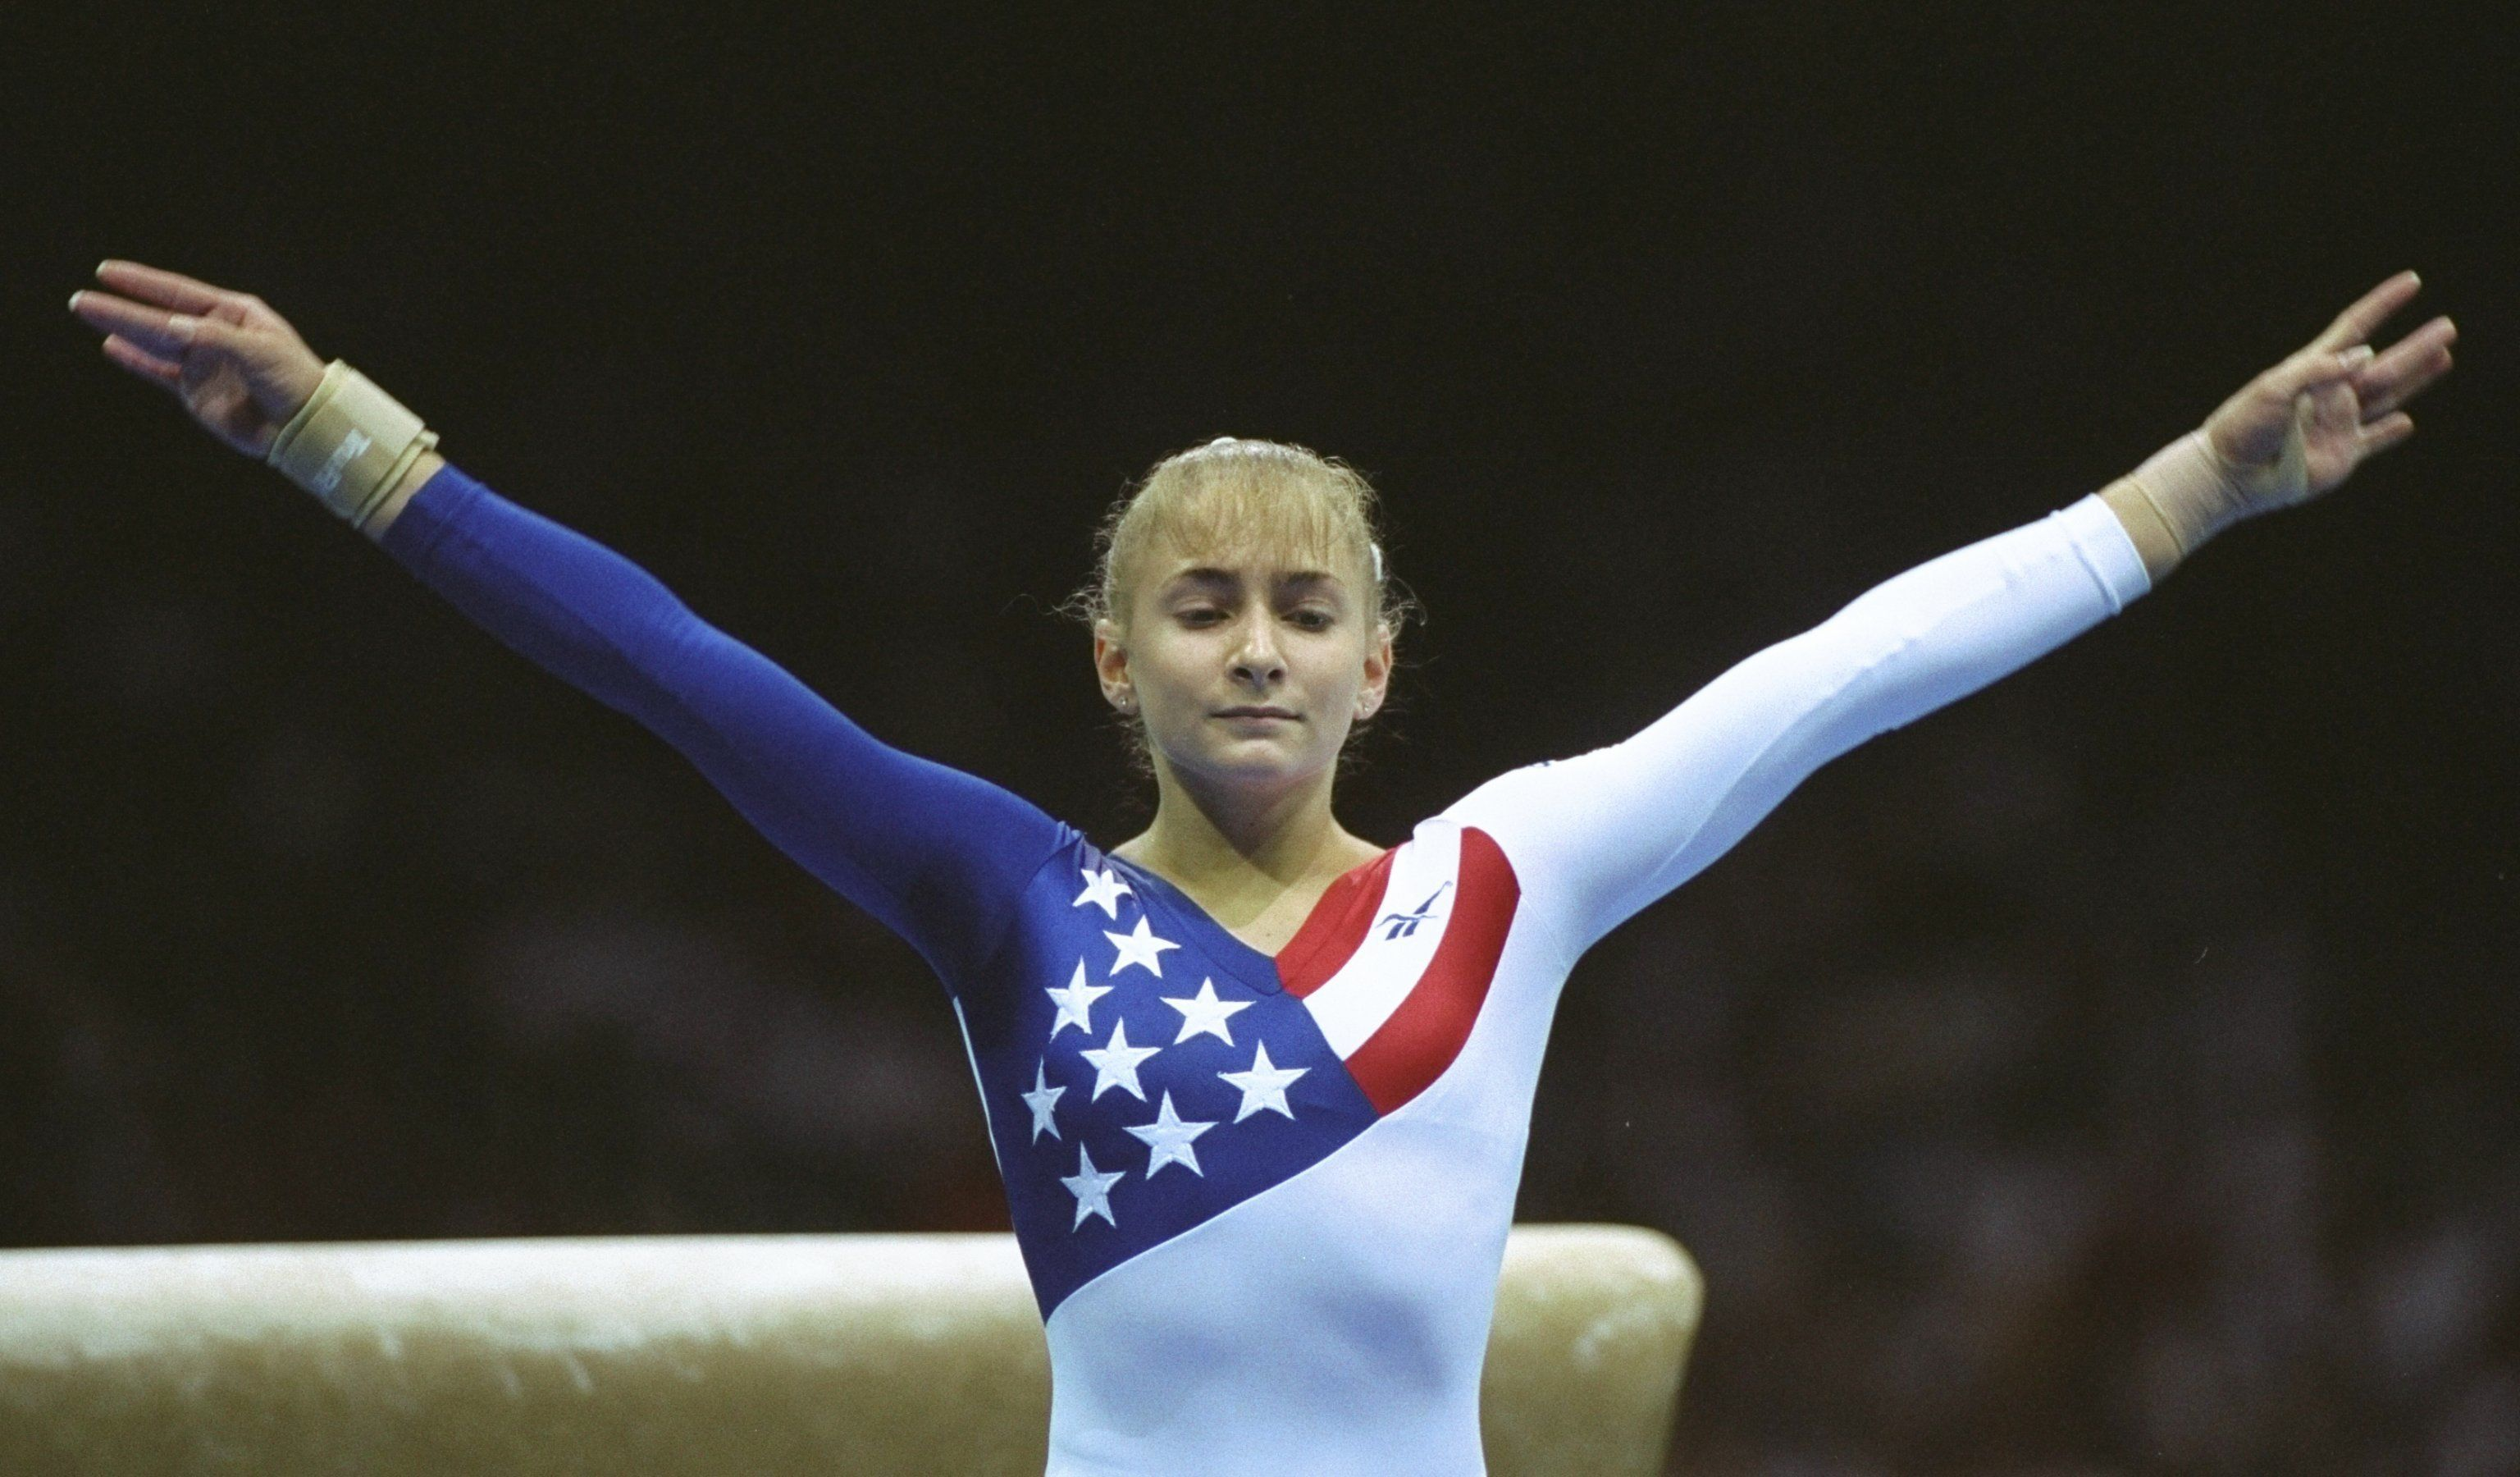 23 Jul 1996: Shannon Miller of the USA in action during the womens team gymnastics at the Georgia Dome at the 1996 Centennial Olympic Games in Atlanta, Georgia. Mandatory Credit: Mike Powell  /Allsport